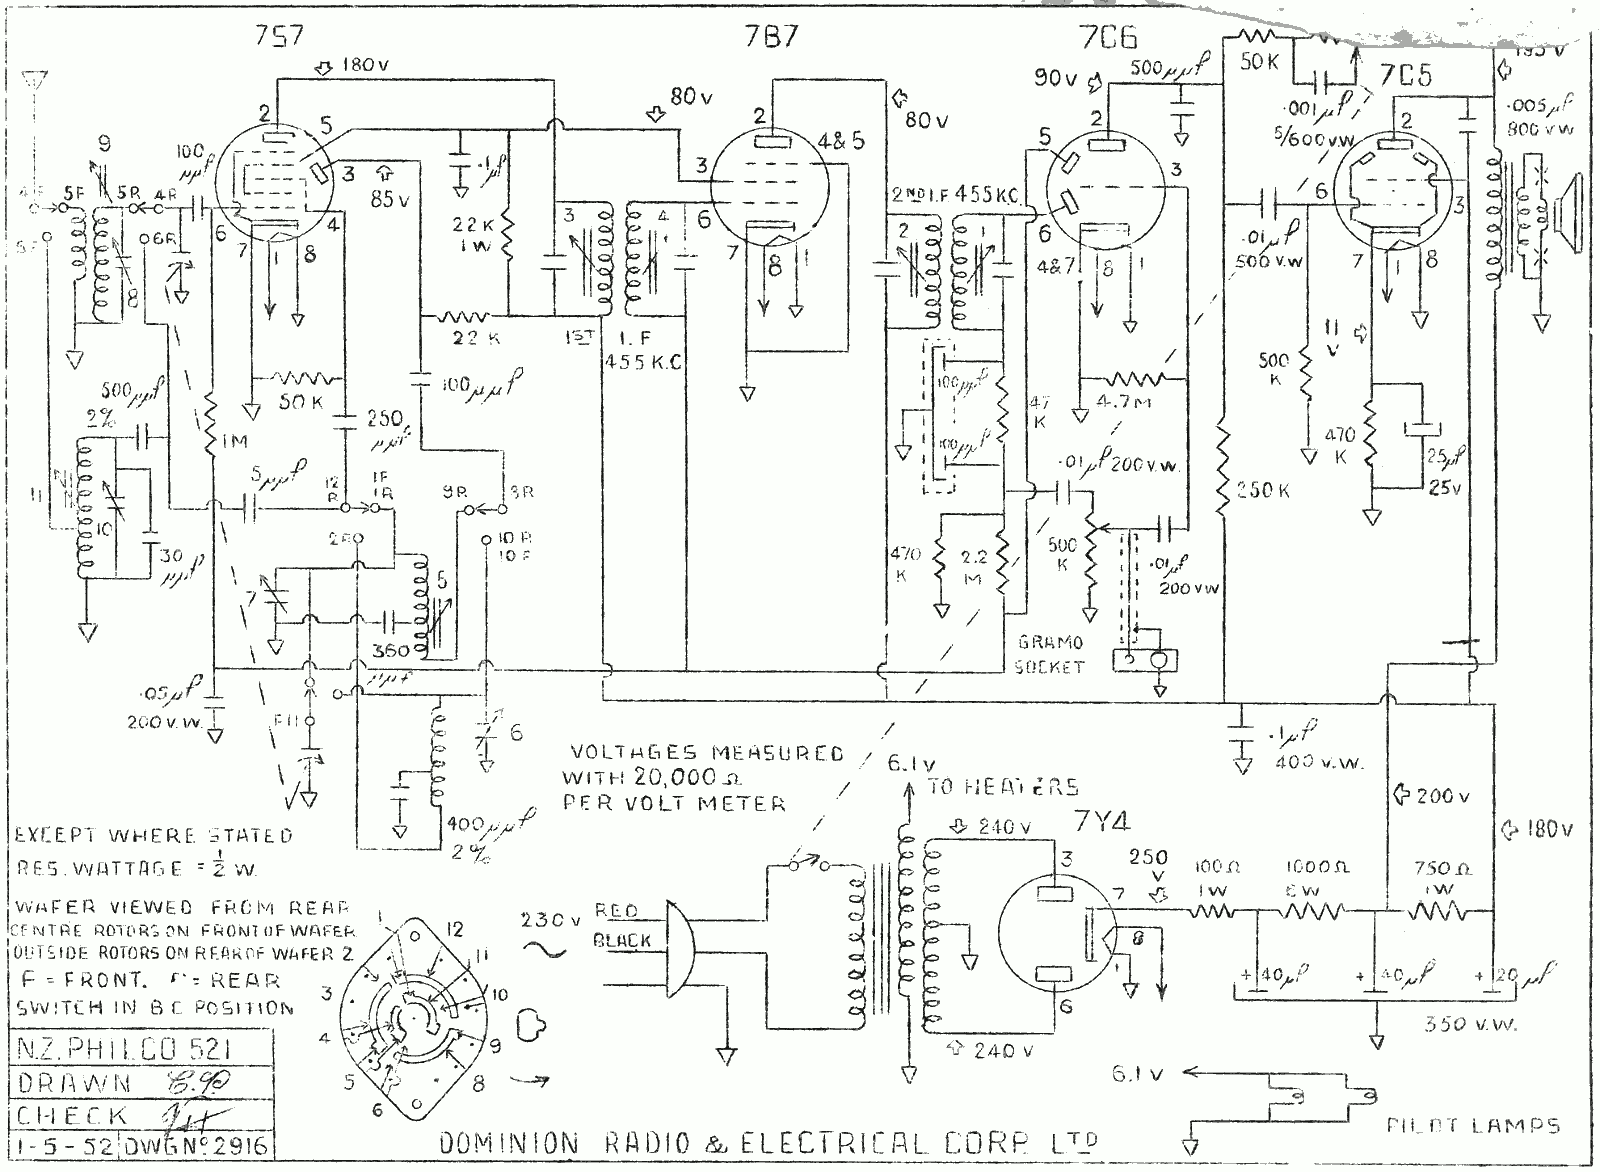 1952 Philco model 521 Schematic